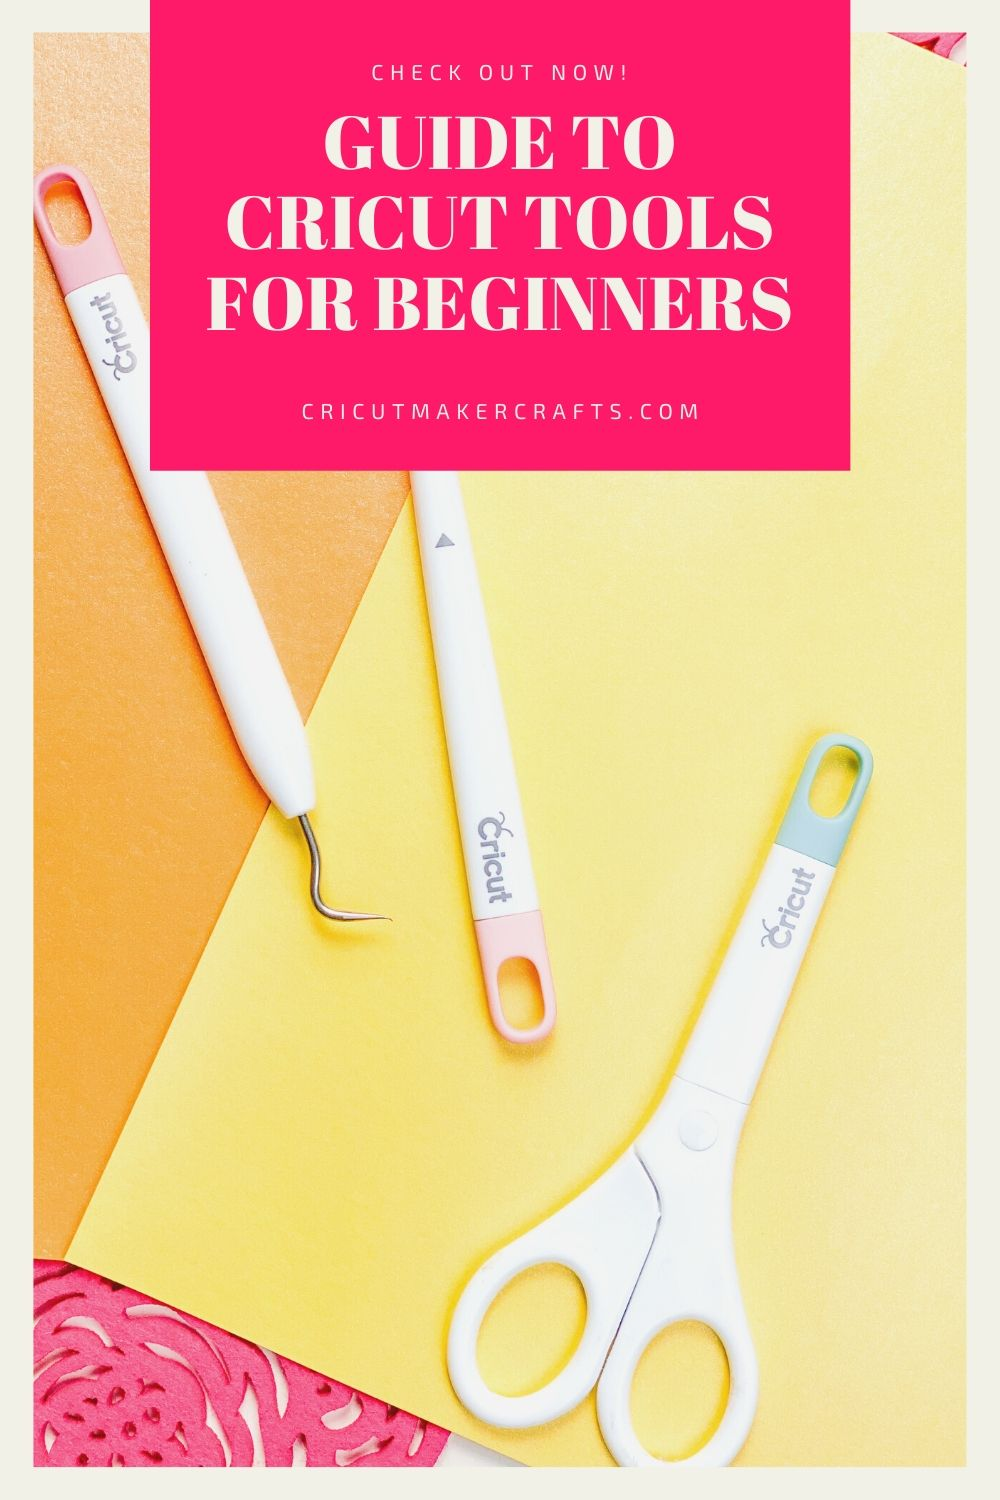 Cricut scissors, weeder and scoring stylus